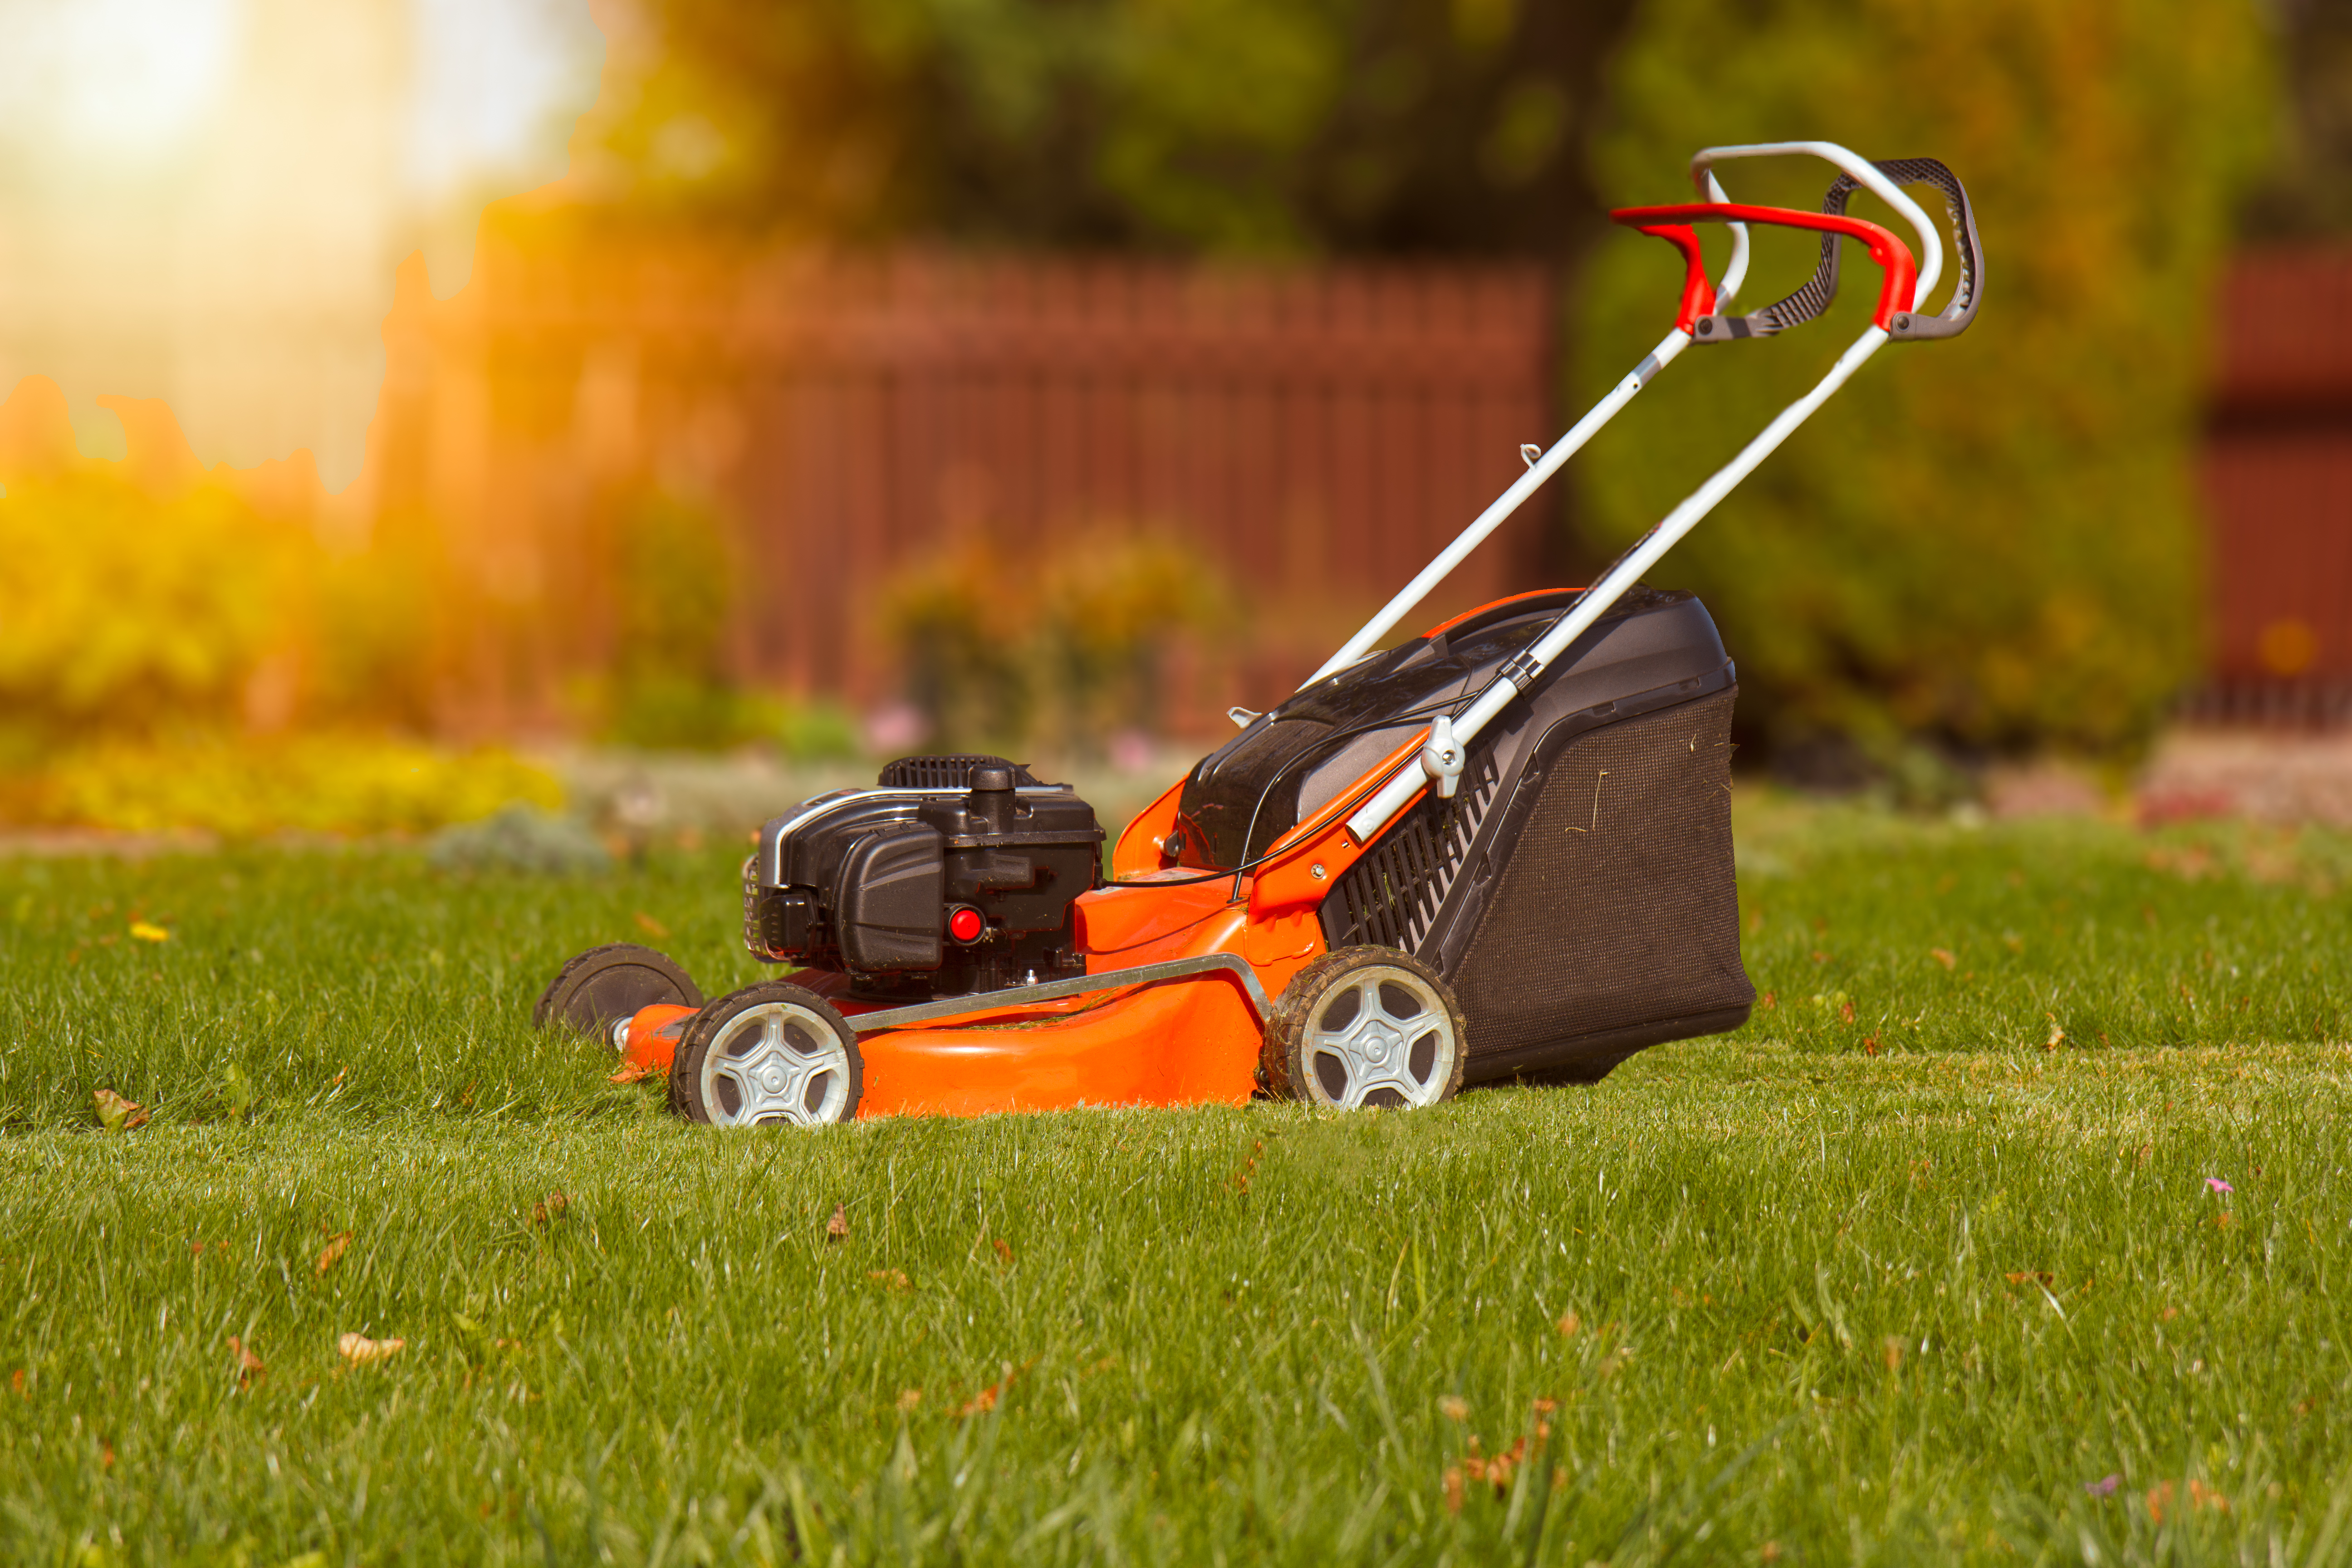 The Pull String on My Push Mower Is Locked Up | Home Guides